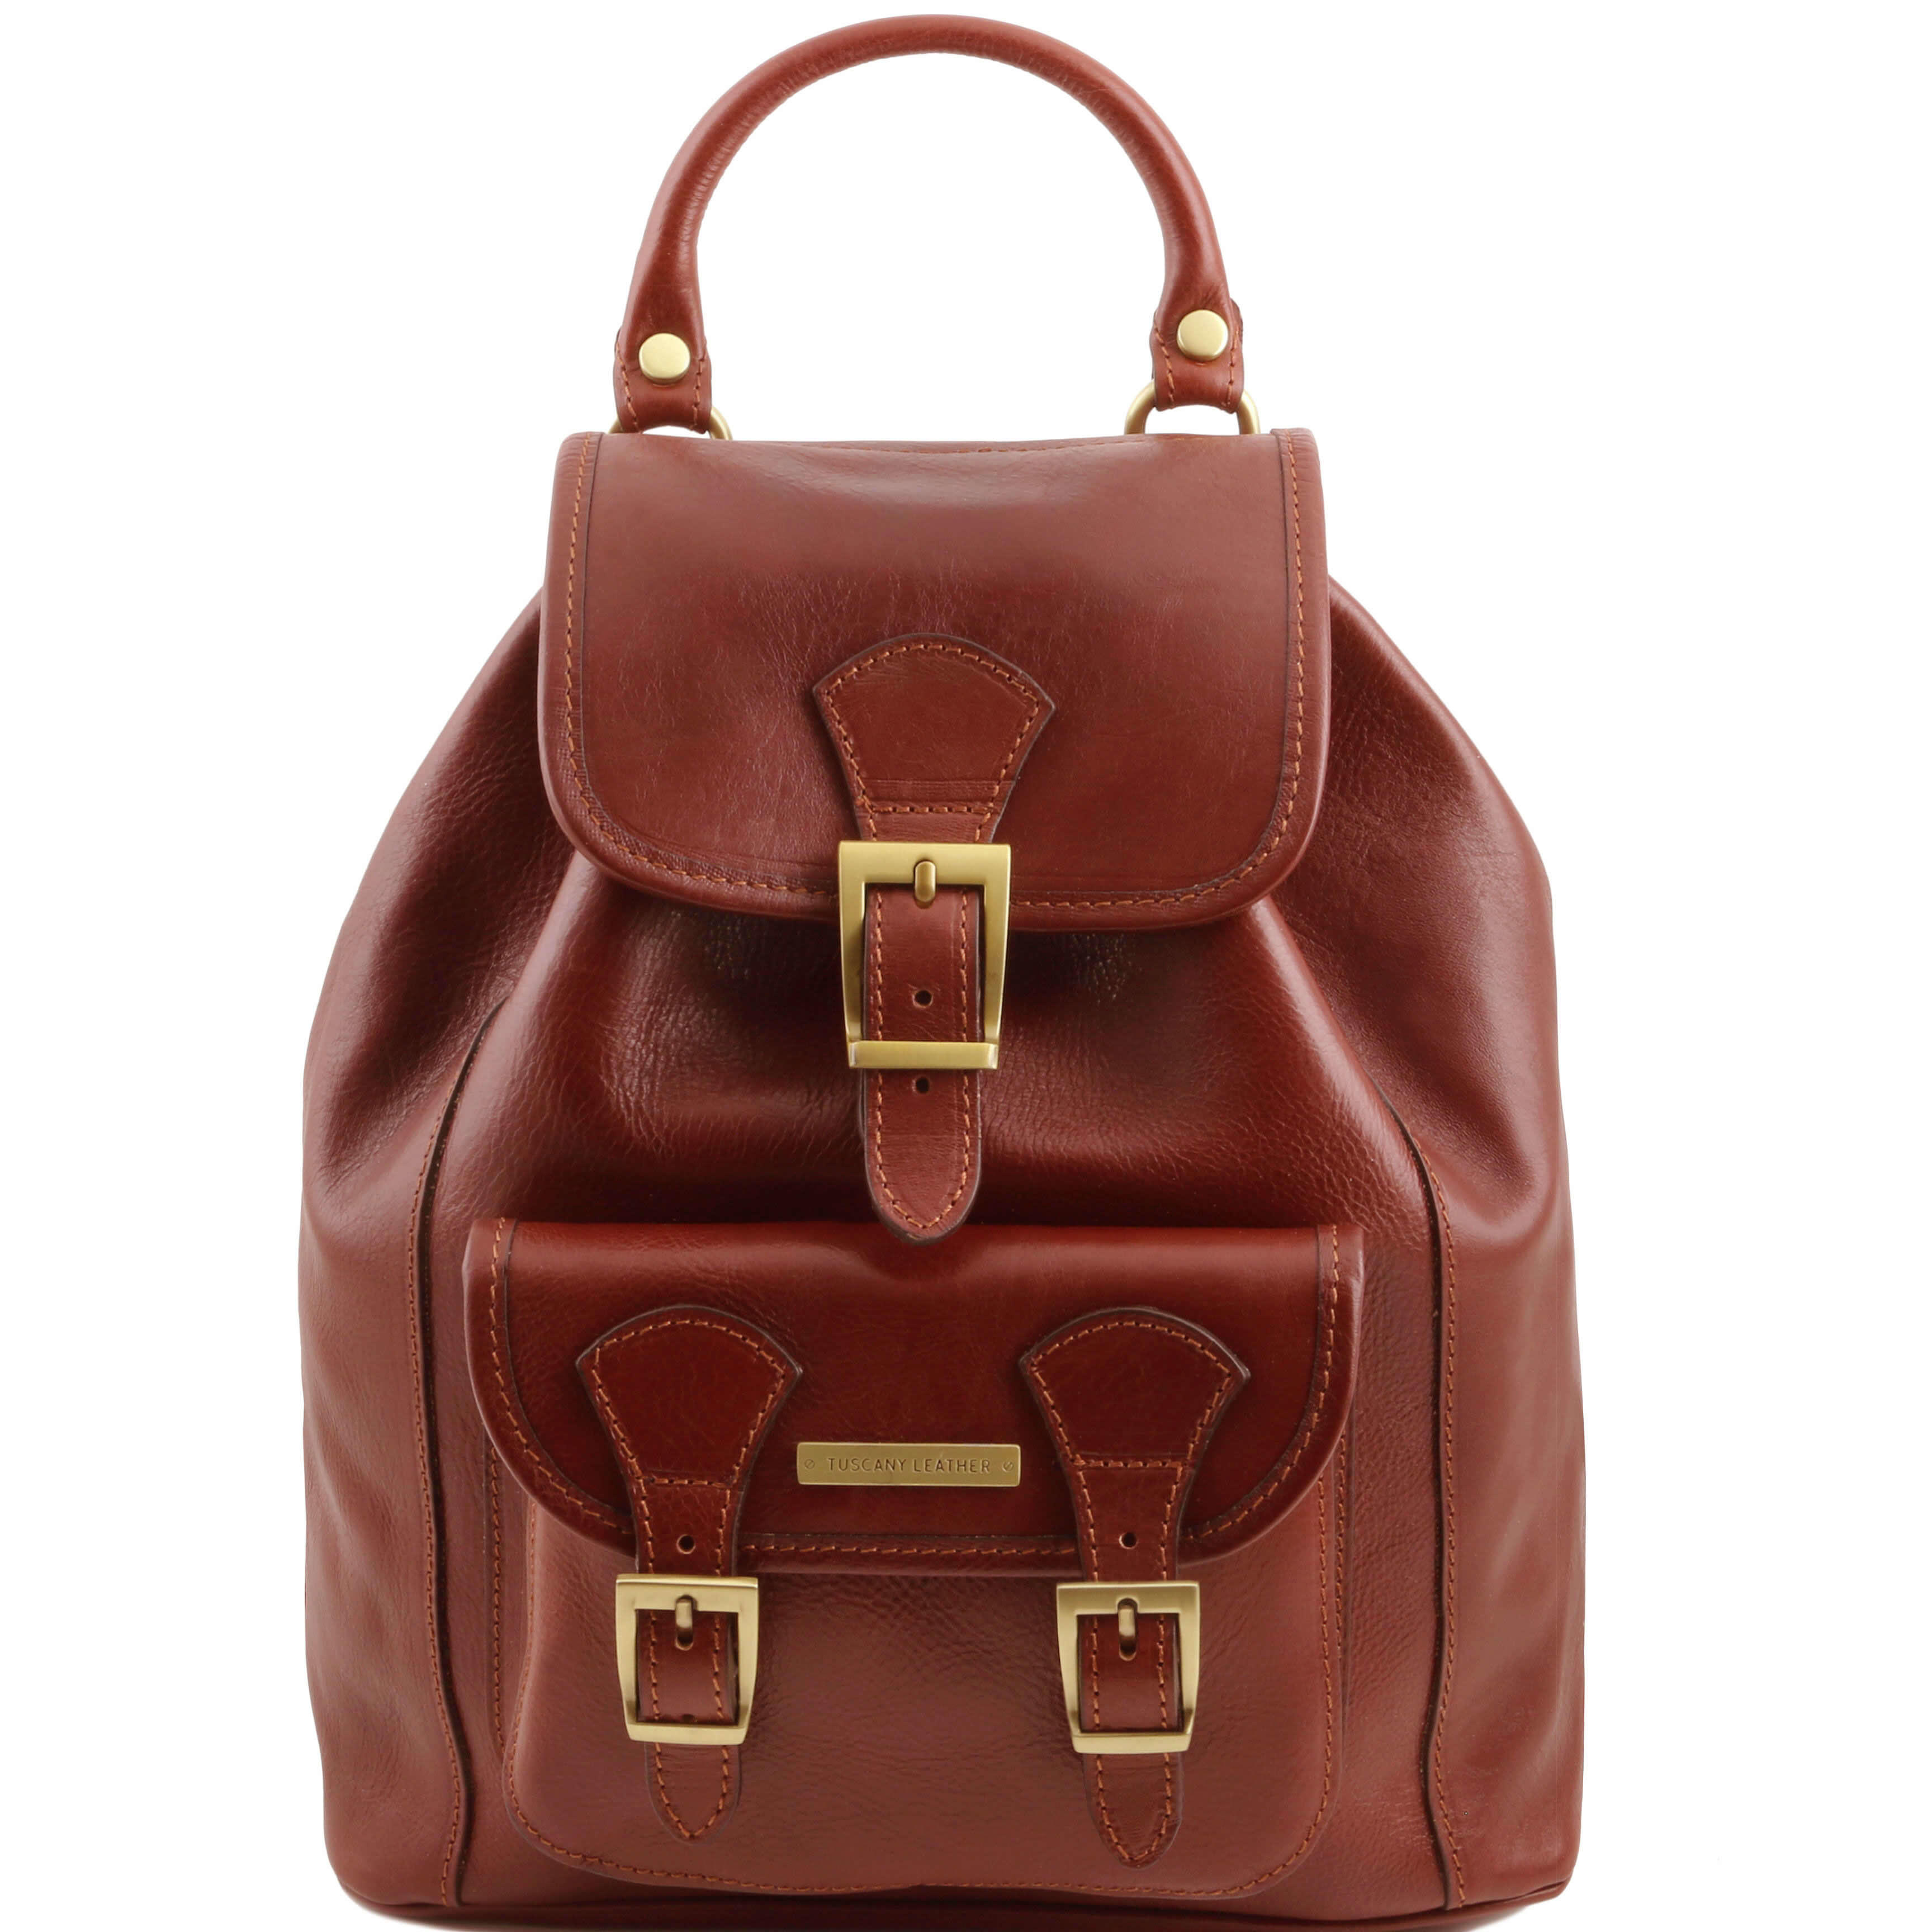 TL141342 Kobe Leather Buisness - Leisure - Hiking - Backpack - R